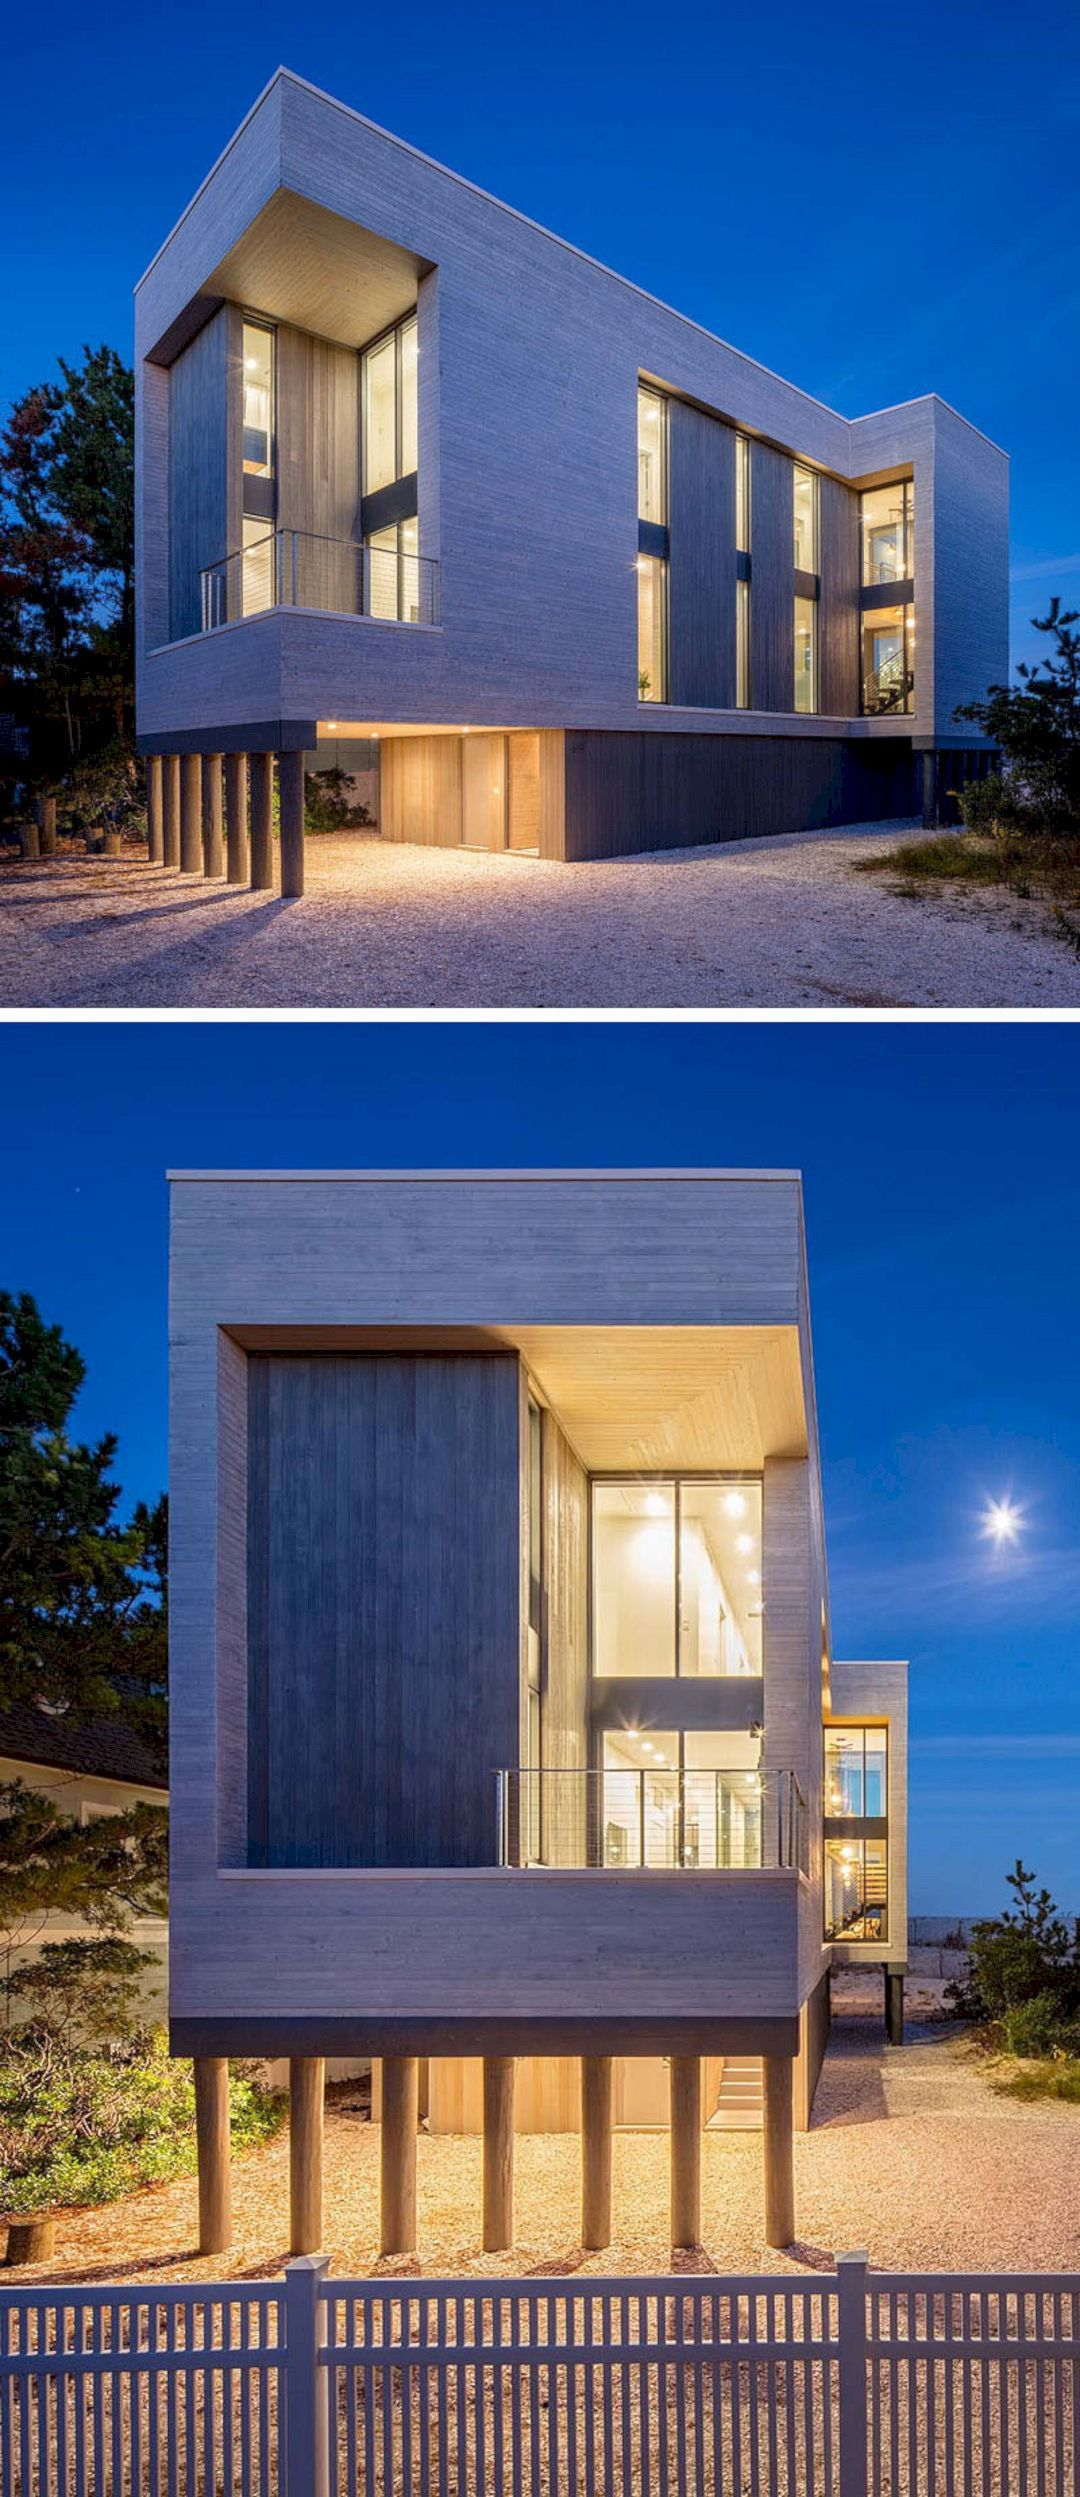 Modern Beach House Design Ideas to Welcome Summer | House Design and on modern homes manhattan, modern homes washington, schools new jersey, modern homes albuquerque, modern homes georgia, painting new jersey, places to visit in new jersey, modern homes hollywood, modern homes des moines, san francisco new jersey, the biggest house in new jersey, modern homes st. louis, modern homes san antonio, modern homes oklahoma city, mary mcdonald new jersey, urban new jersey, modern alpine chalet home, modern homes louisville, modern homes kansas city, modern homes mexico,